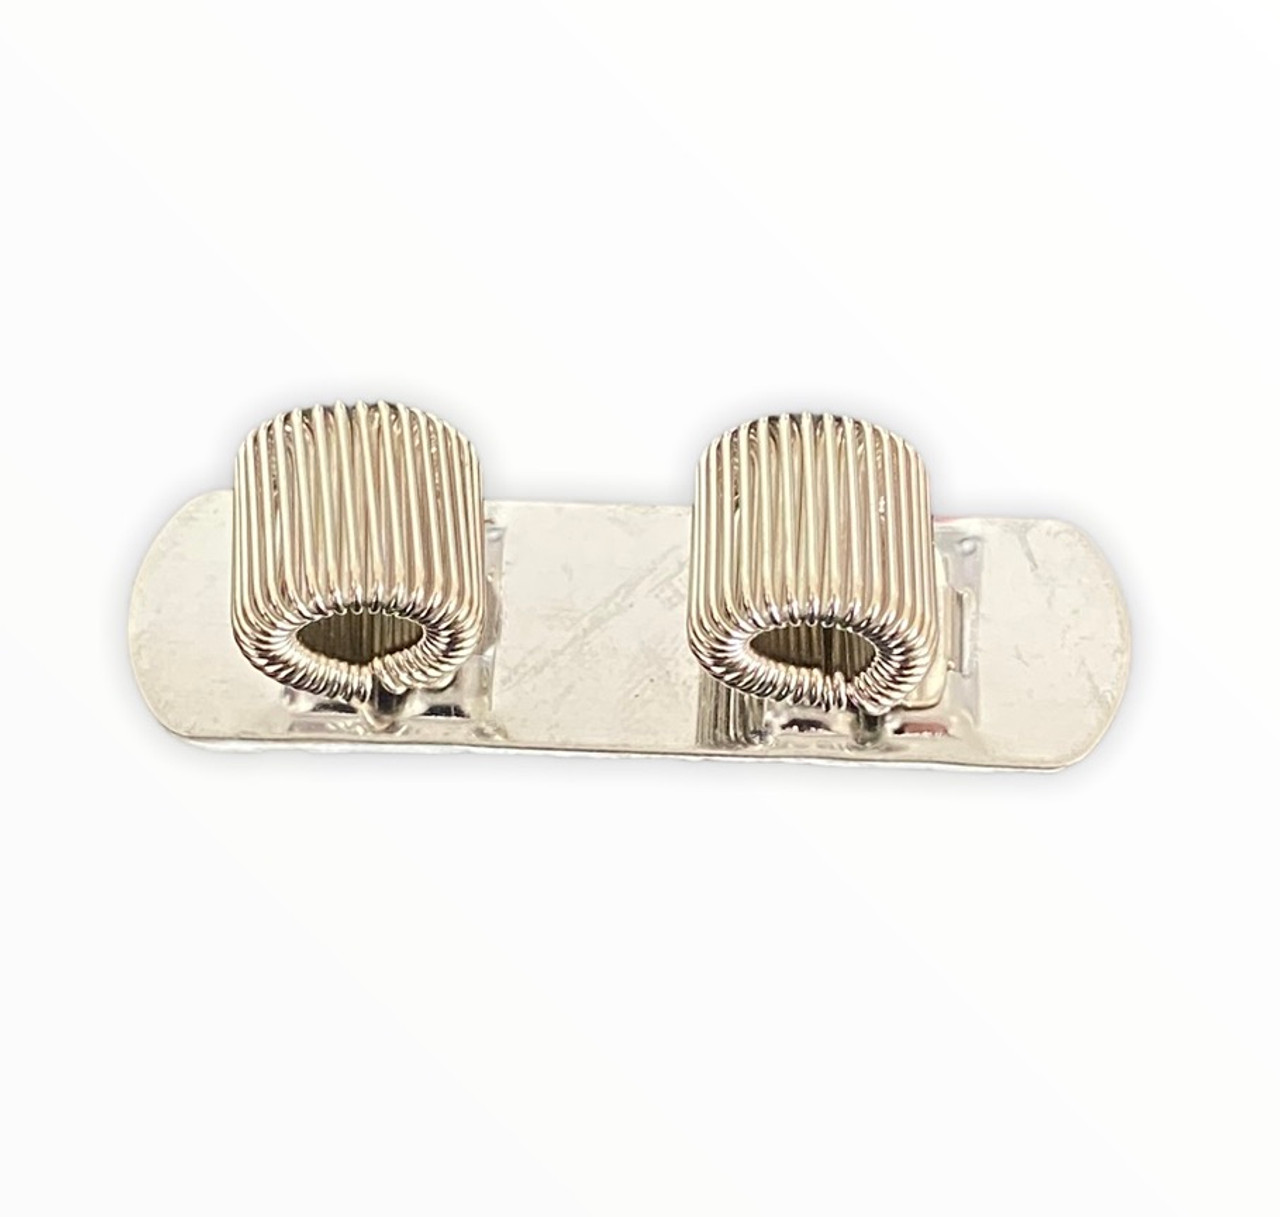 2 Pencil Clip Holder Adhesive backed